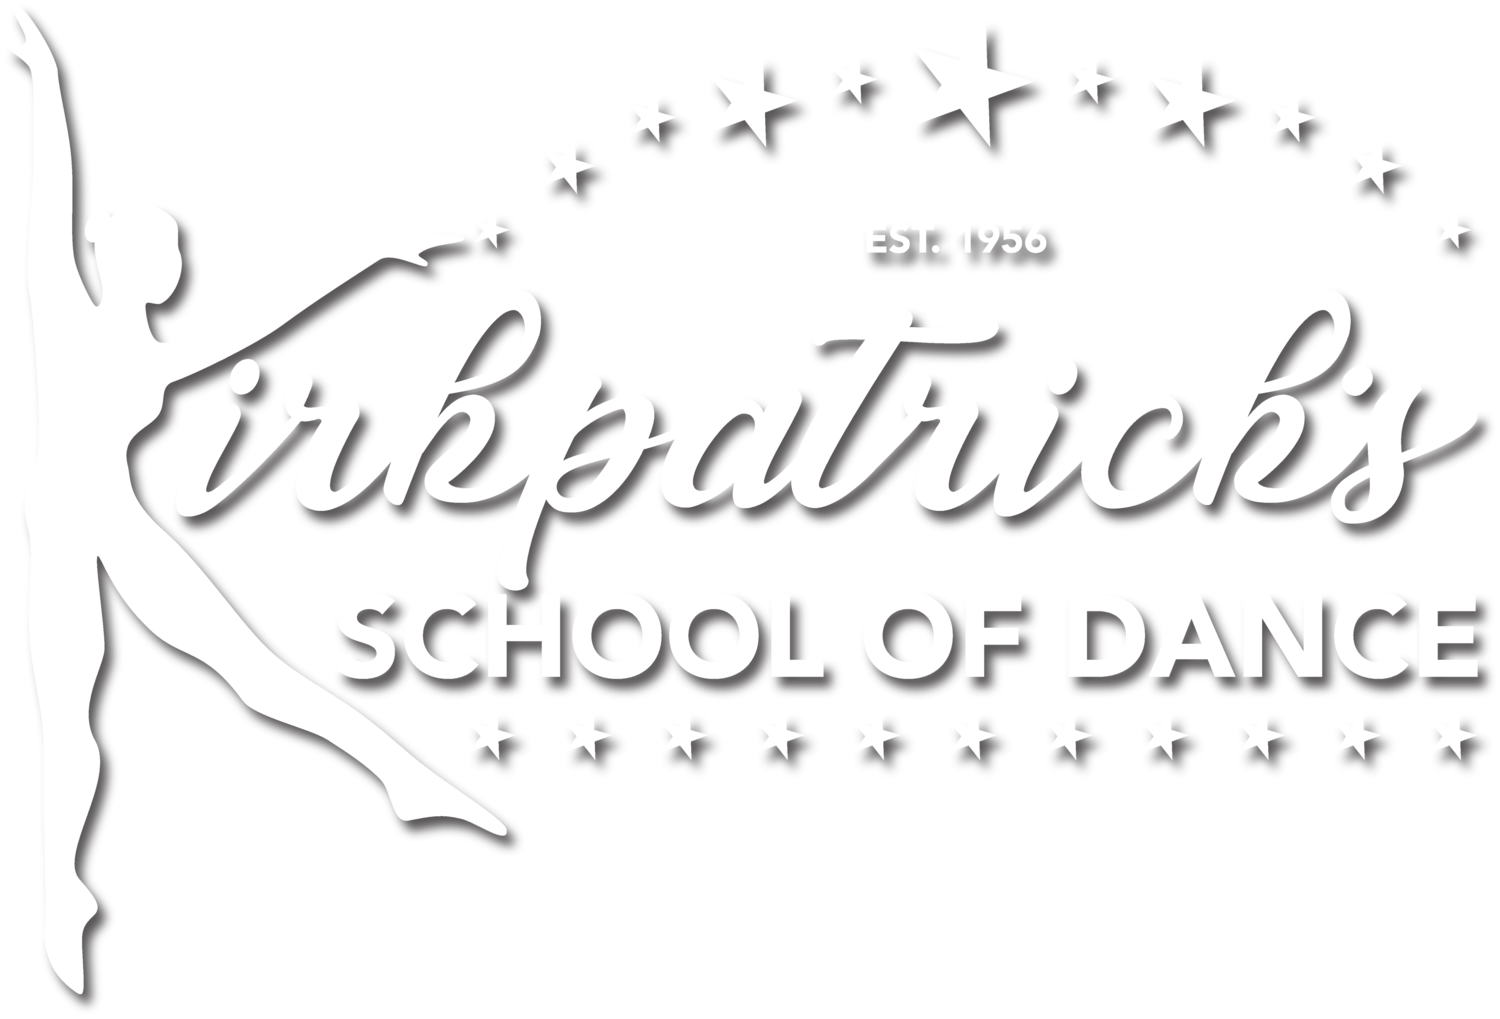 Kirkpatrick's School of Dance